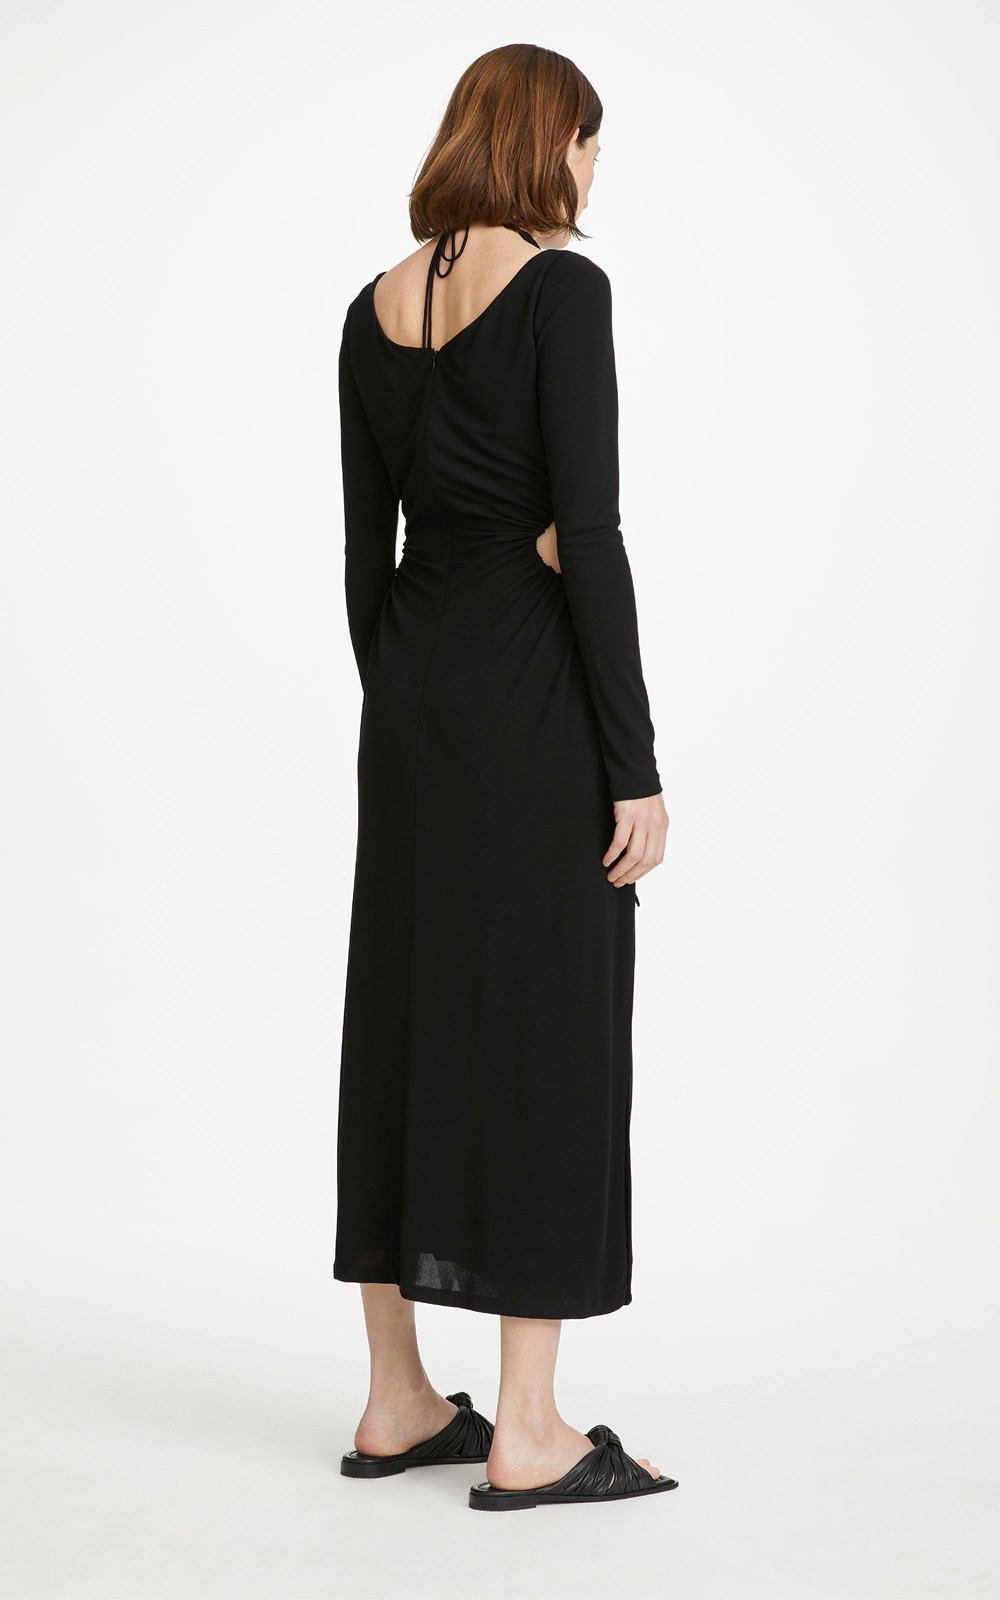 Dresses | DOUBLE TIE VISCOSE JERSEY GATHER DRESS